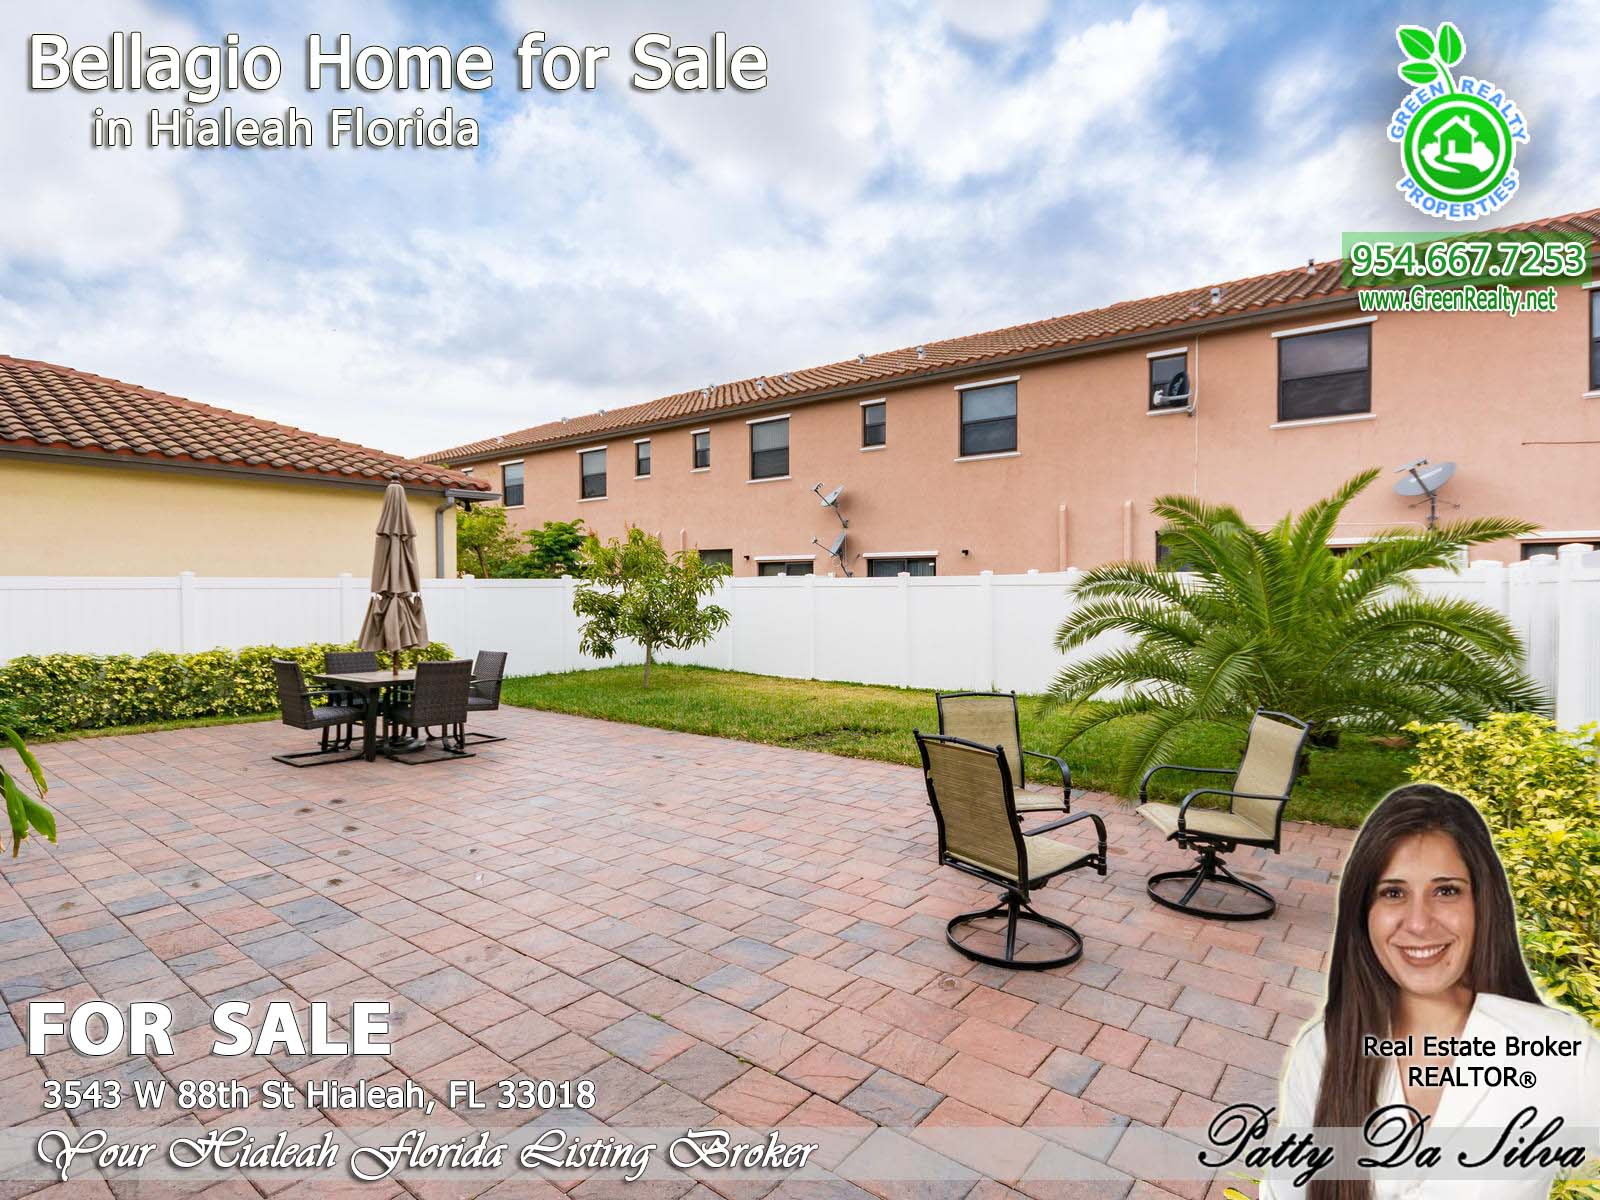 South florida homes for sale by broker Patty da silva of green realty properties (4)